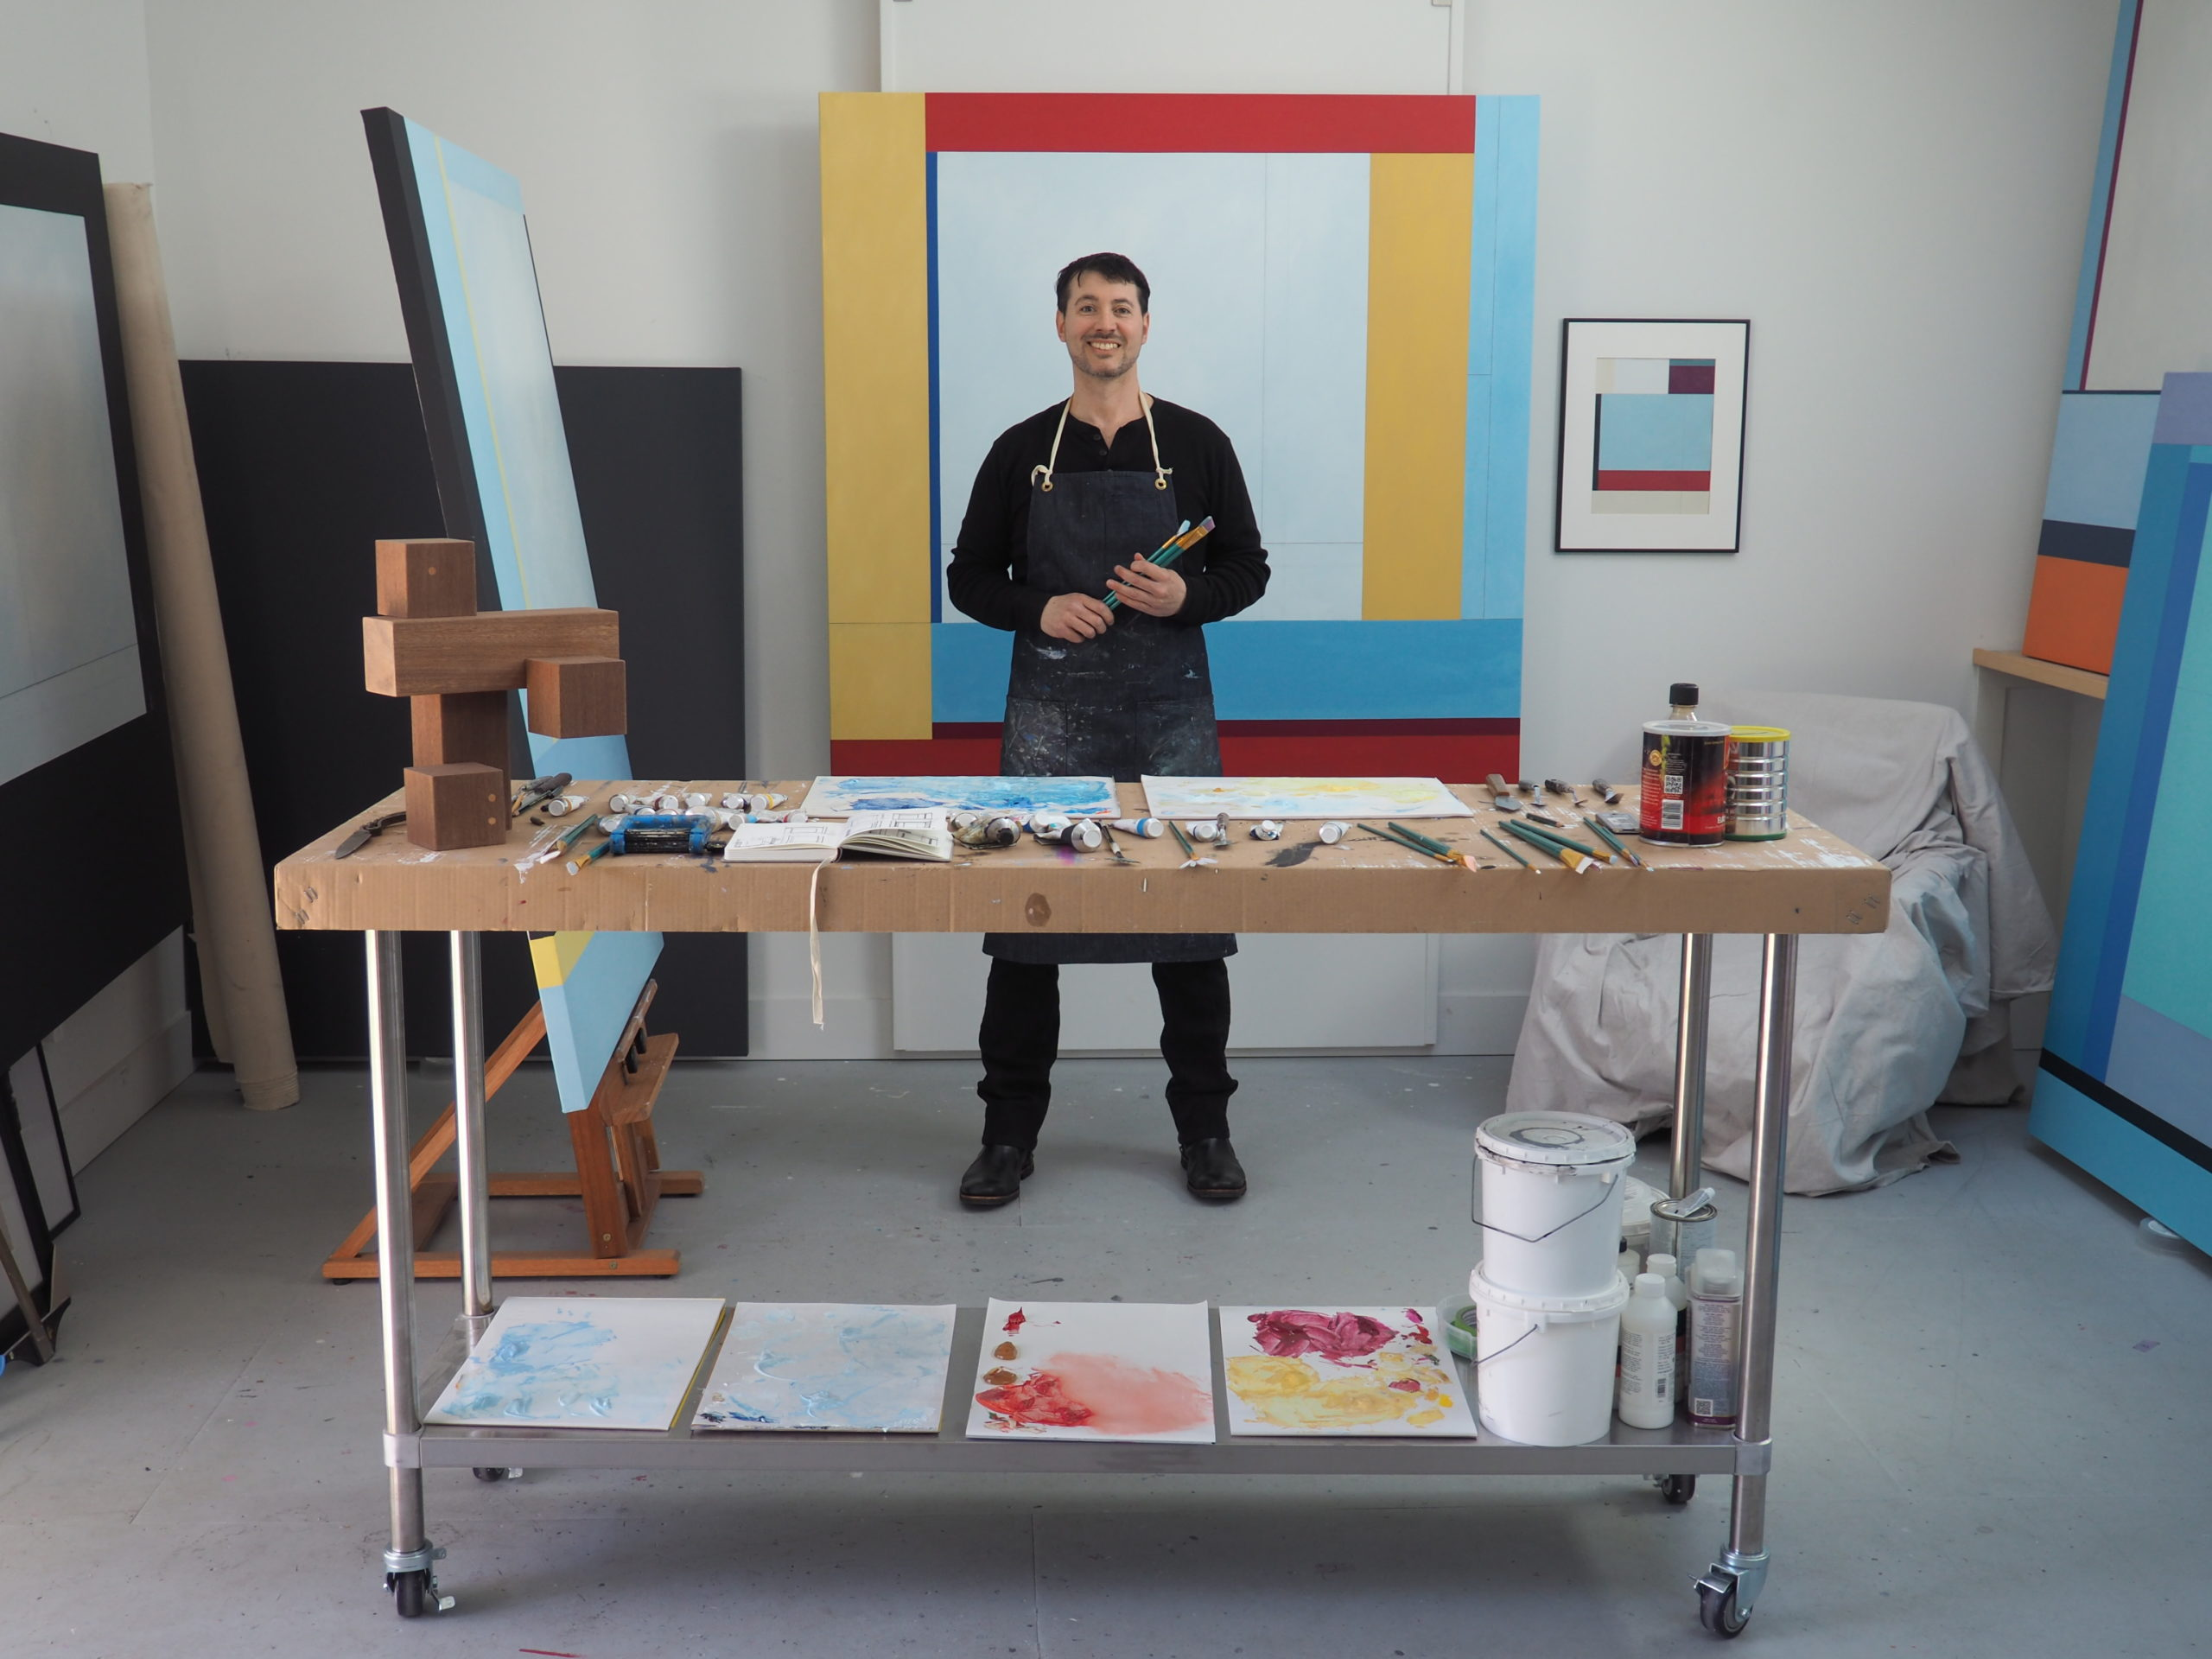 Artist Chris Kelly's solo show opens May 29 at the new Colm Rowan Fine Art Gallery in East Hampton.